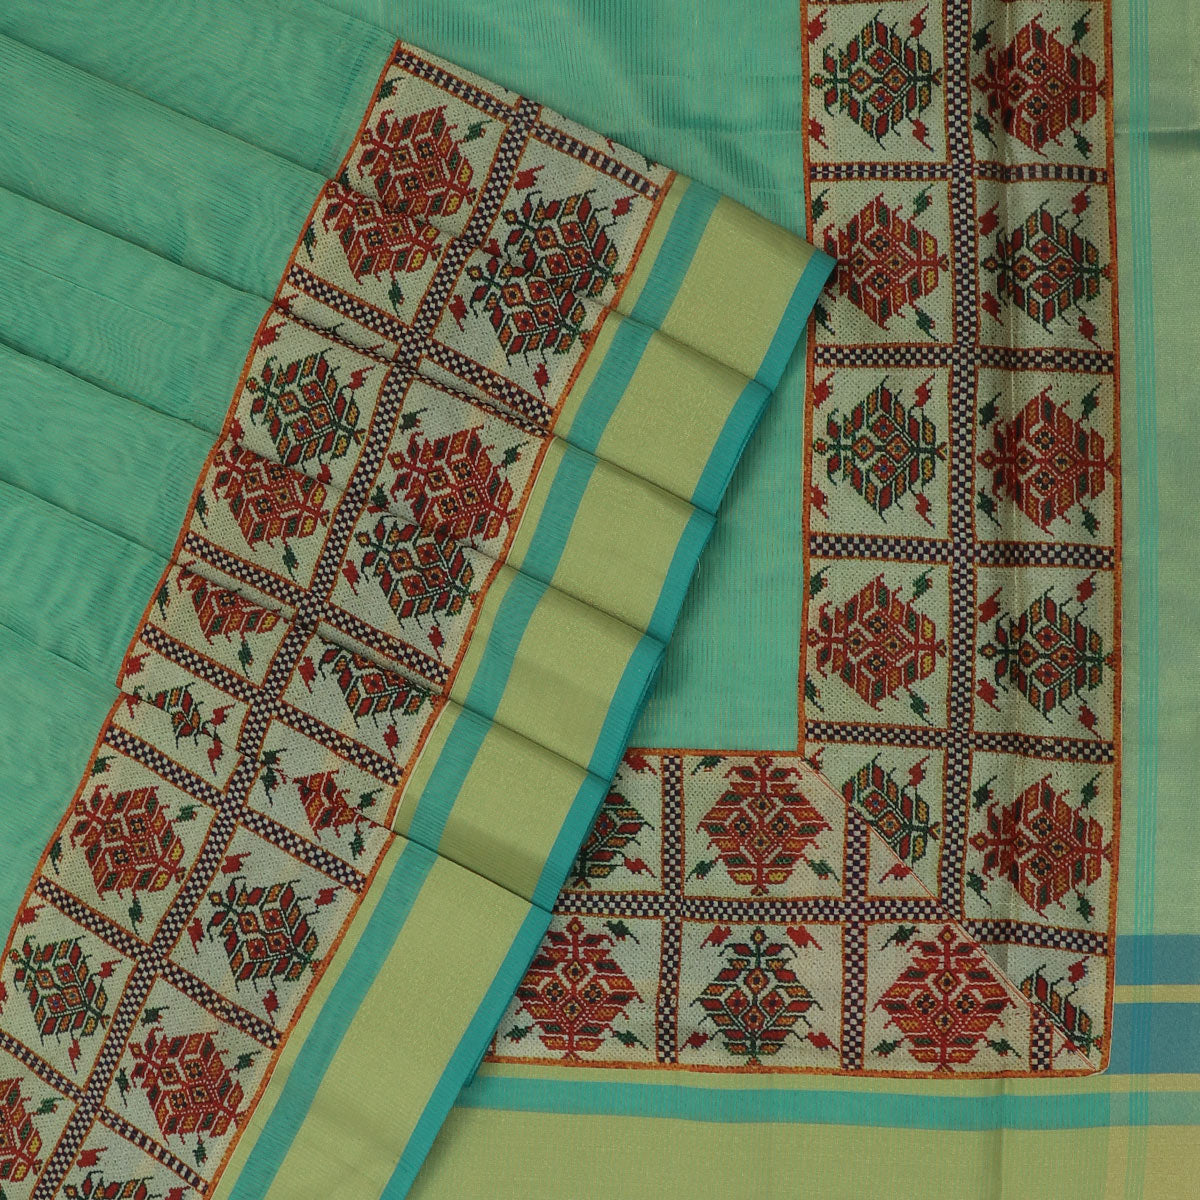 Tissue Saree Light Green with Printed design and zari Border for Rs.Rs. 1900.00 | Tissue Saree by Prashanti Sarees